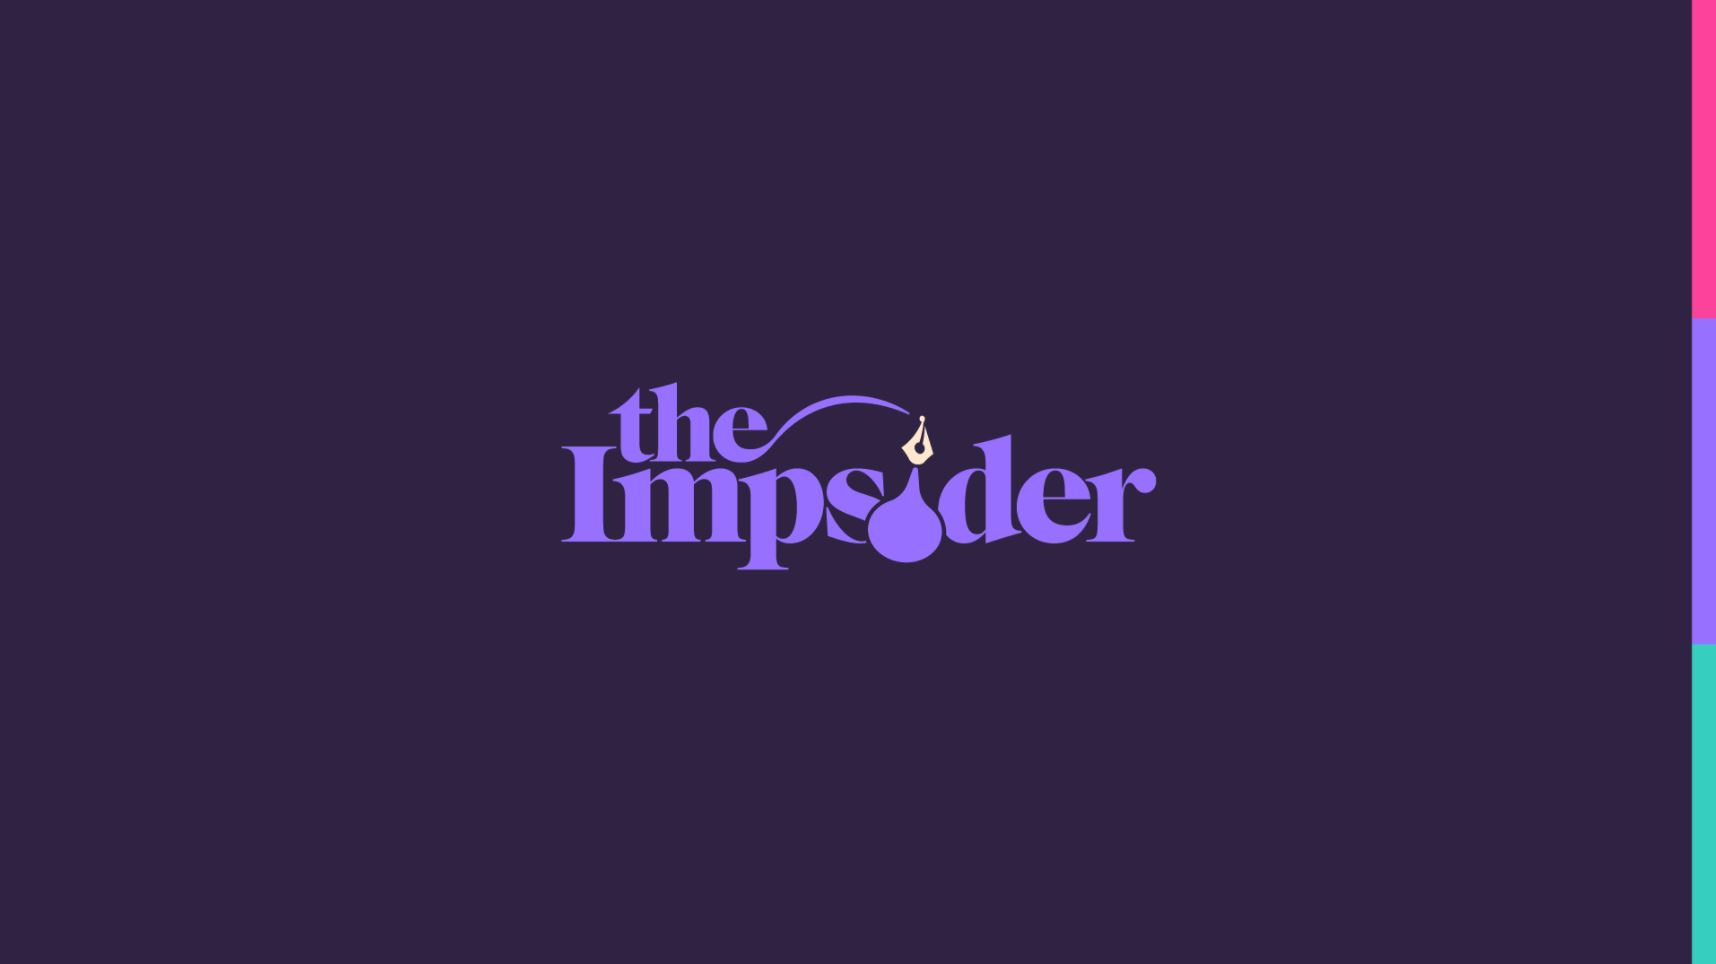 media-molecule-unveils-the-impsider-publication-for-dreams-with-reviews-stories-and-behind-the-scenes-details-on-creations